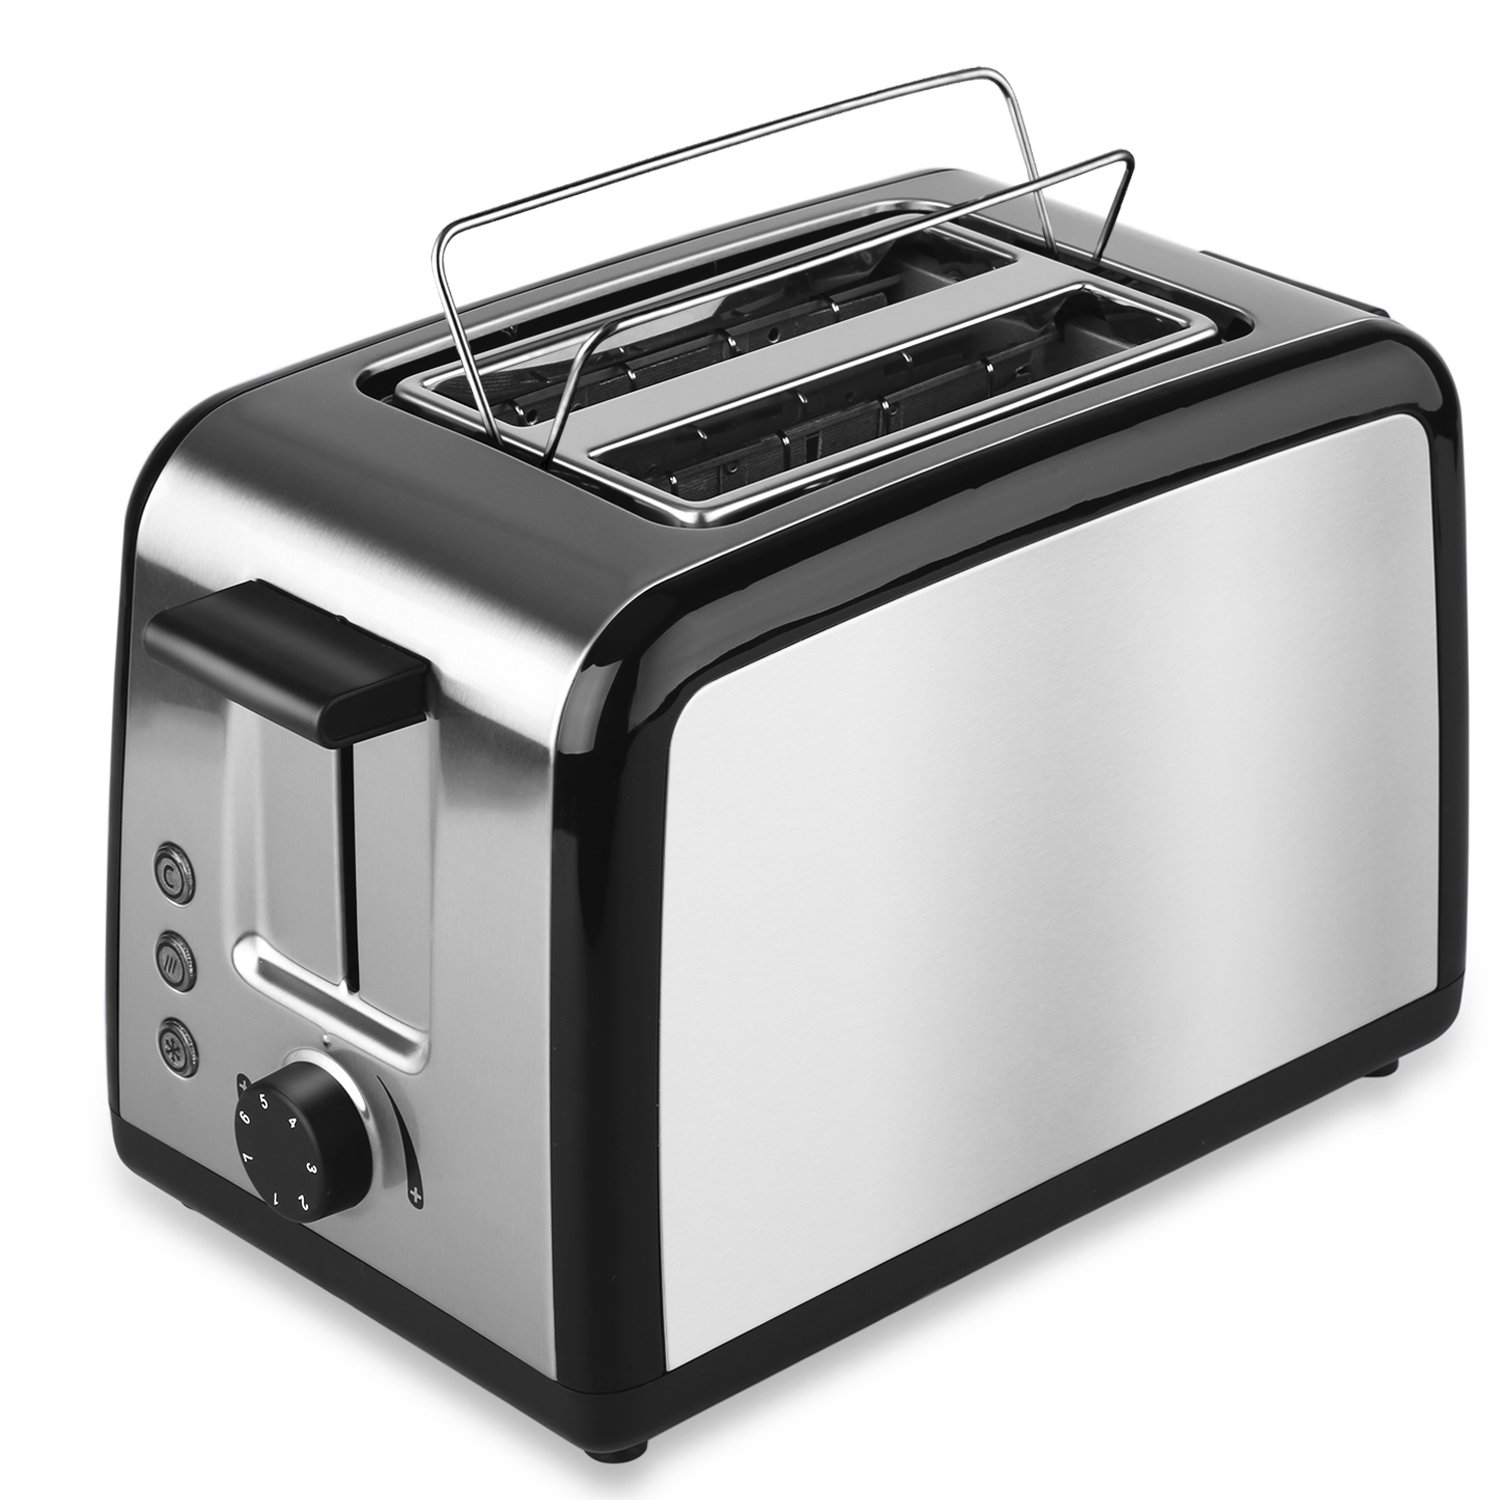 Toasters 2 Slice, Brushed Stainless Steel Bread Toaster With Warming Rack Defrost Reheat Cancel Buttons